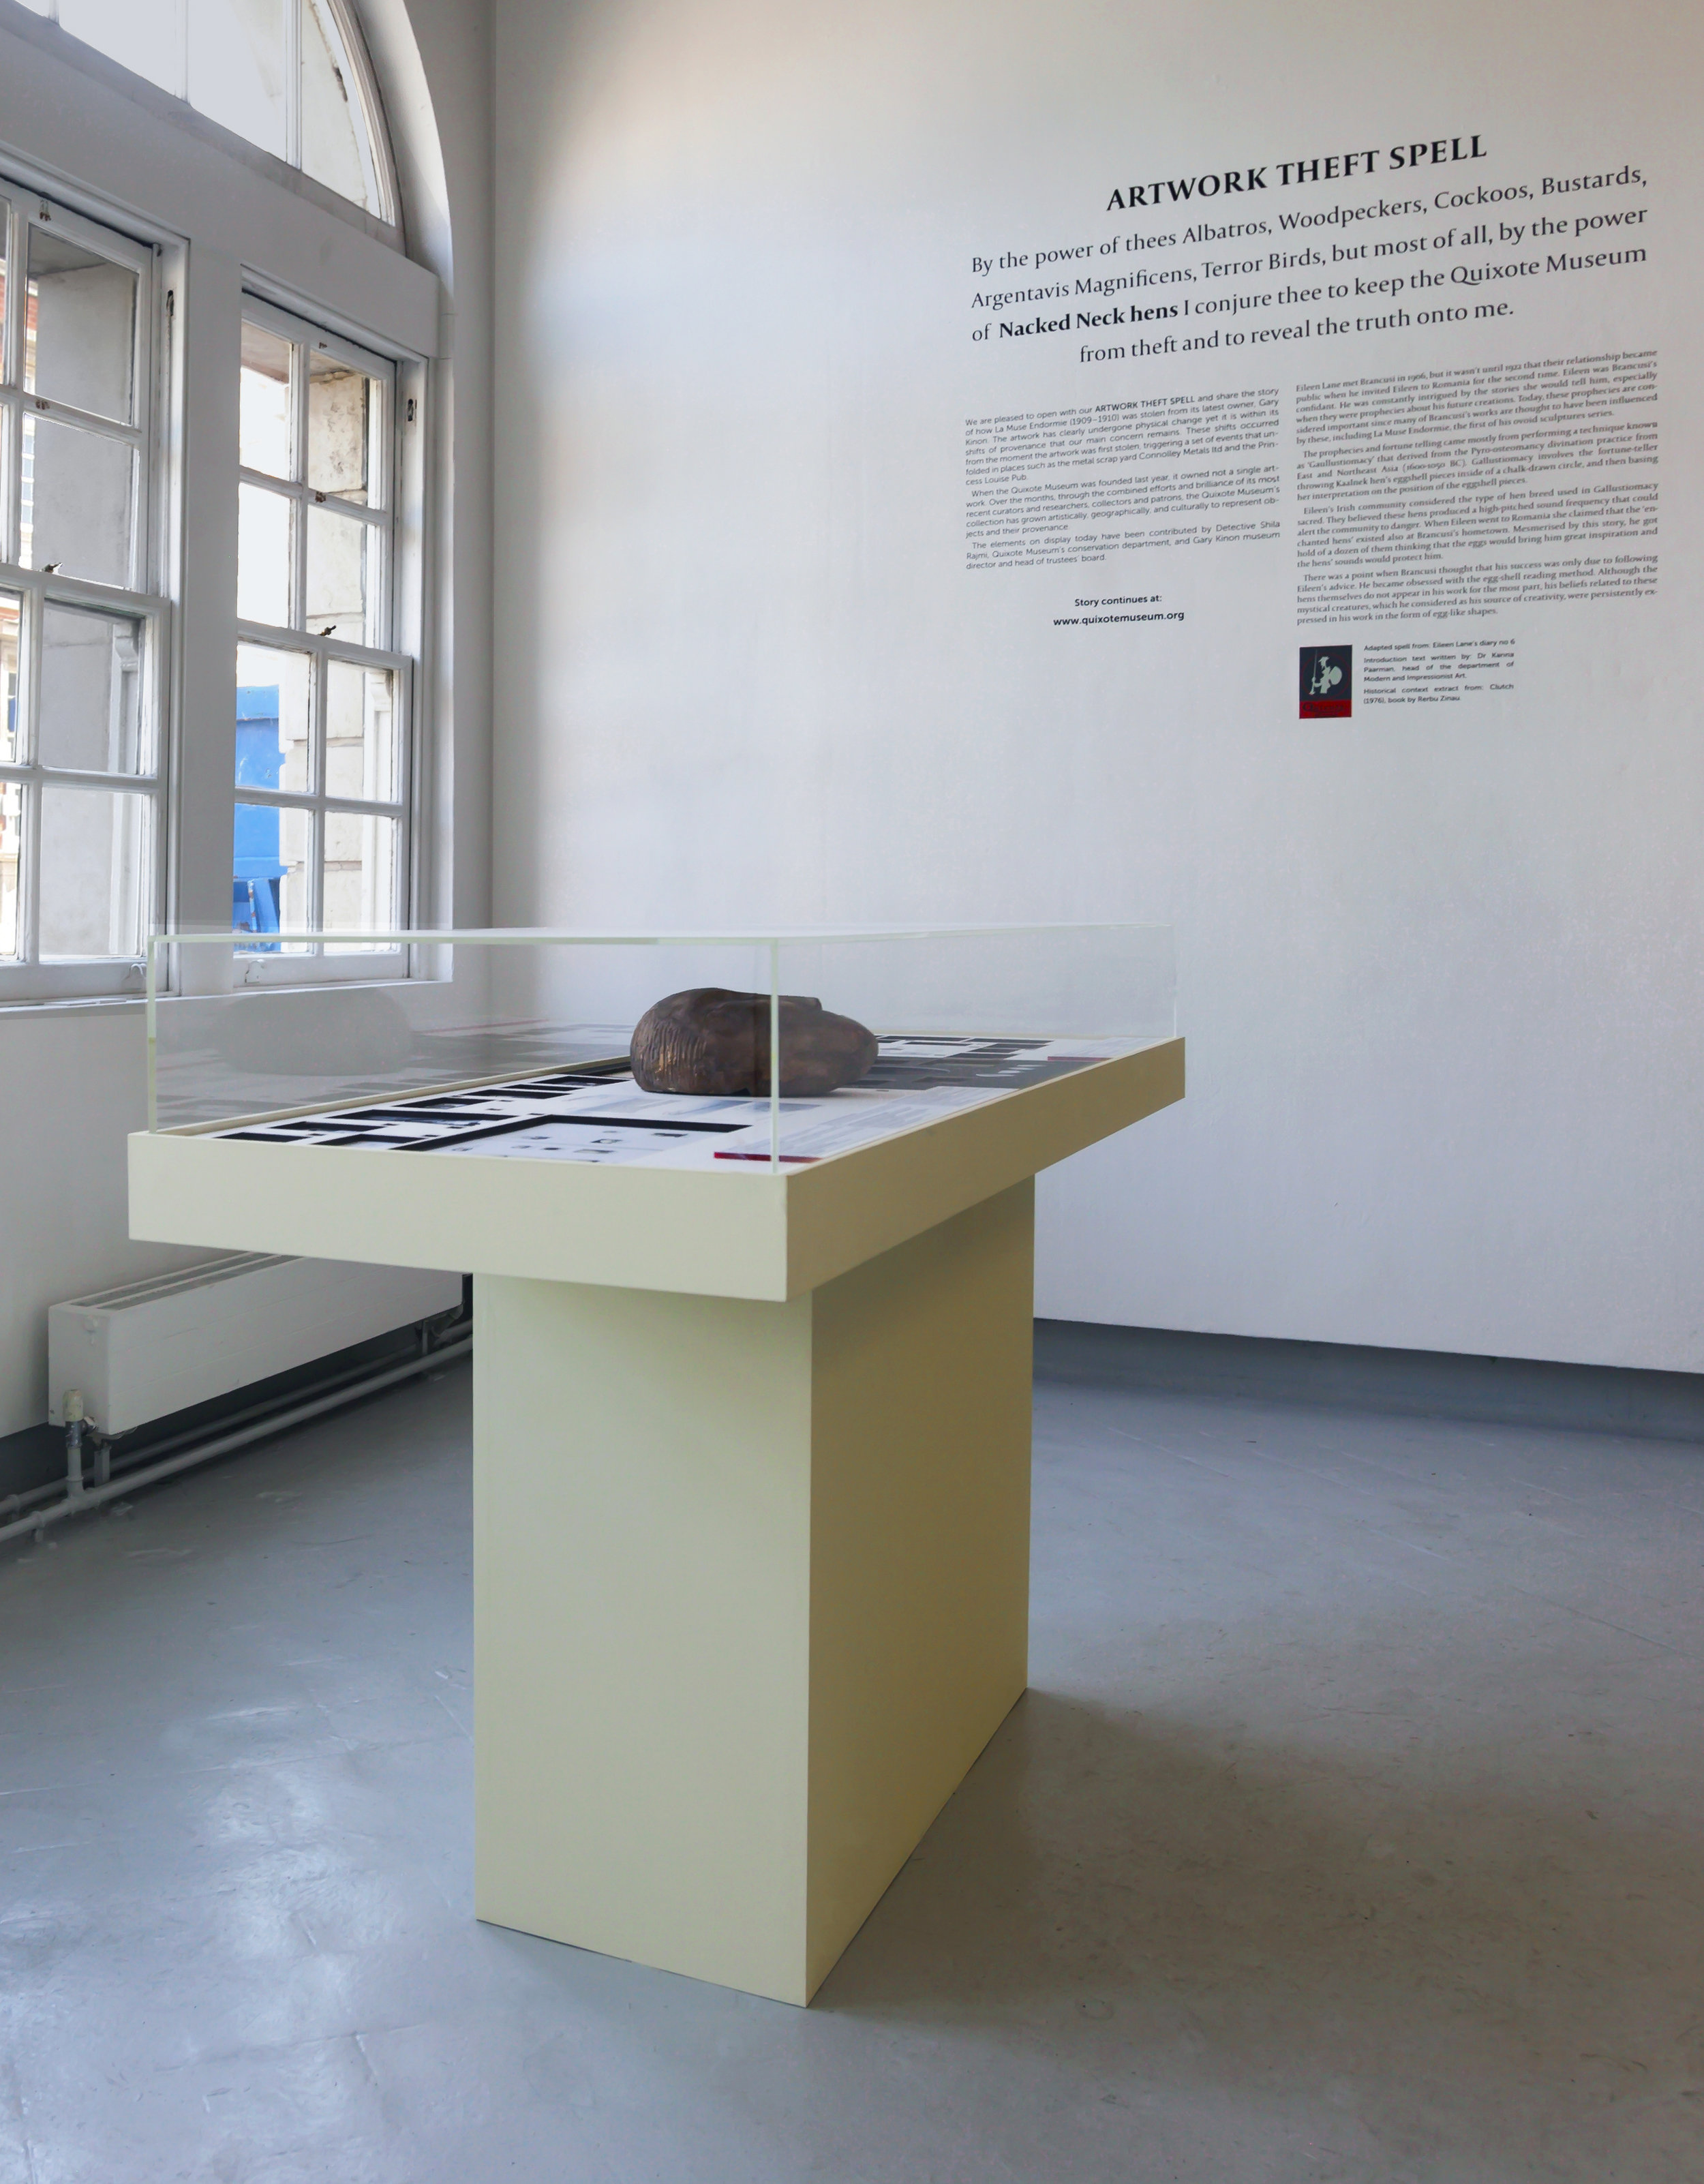 Artwork Theft Spell , installation composed of vinyl wall text, and display case. Intallation view from Chelsea College of Arts, Degree Show 2018.